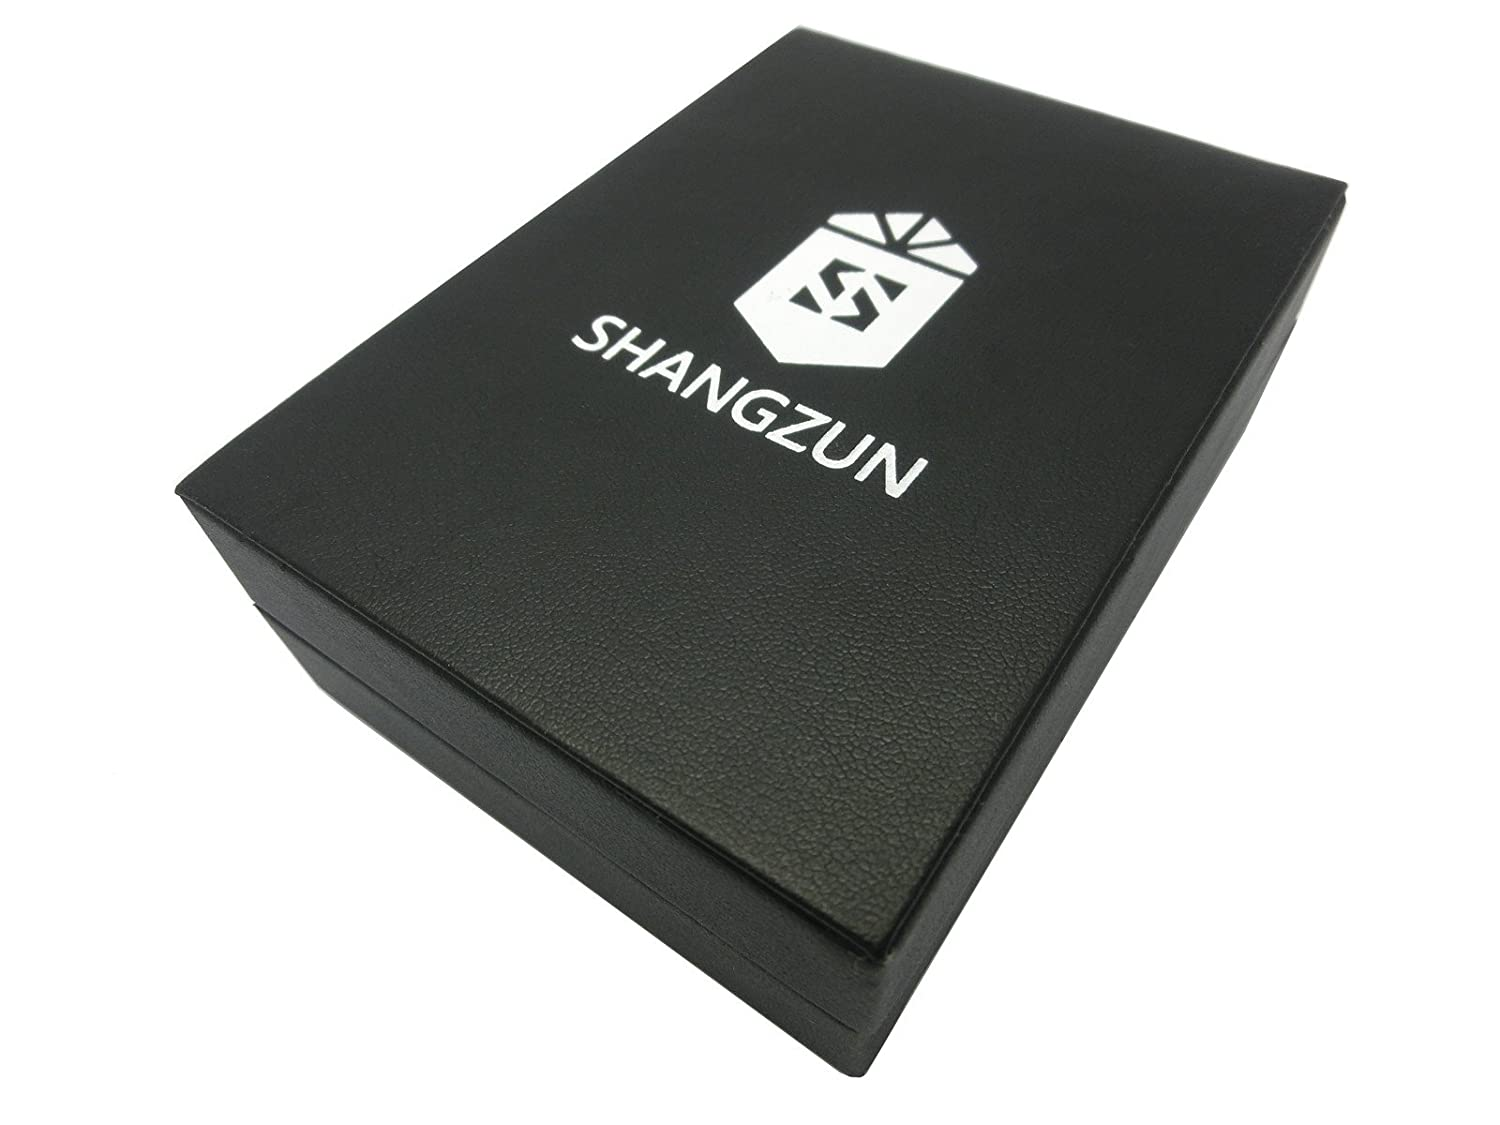 2 Sizes Shang Zun Gift for Dad 8 Pcs Love Notes Stainless Steel Collar Stays in Box